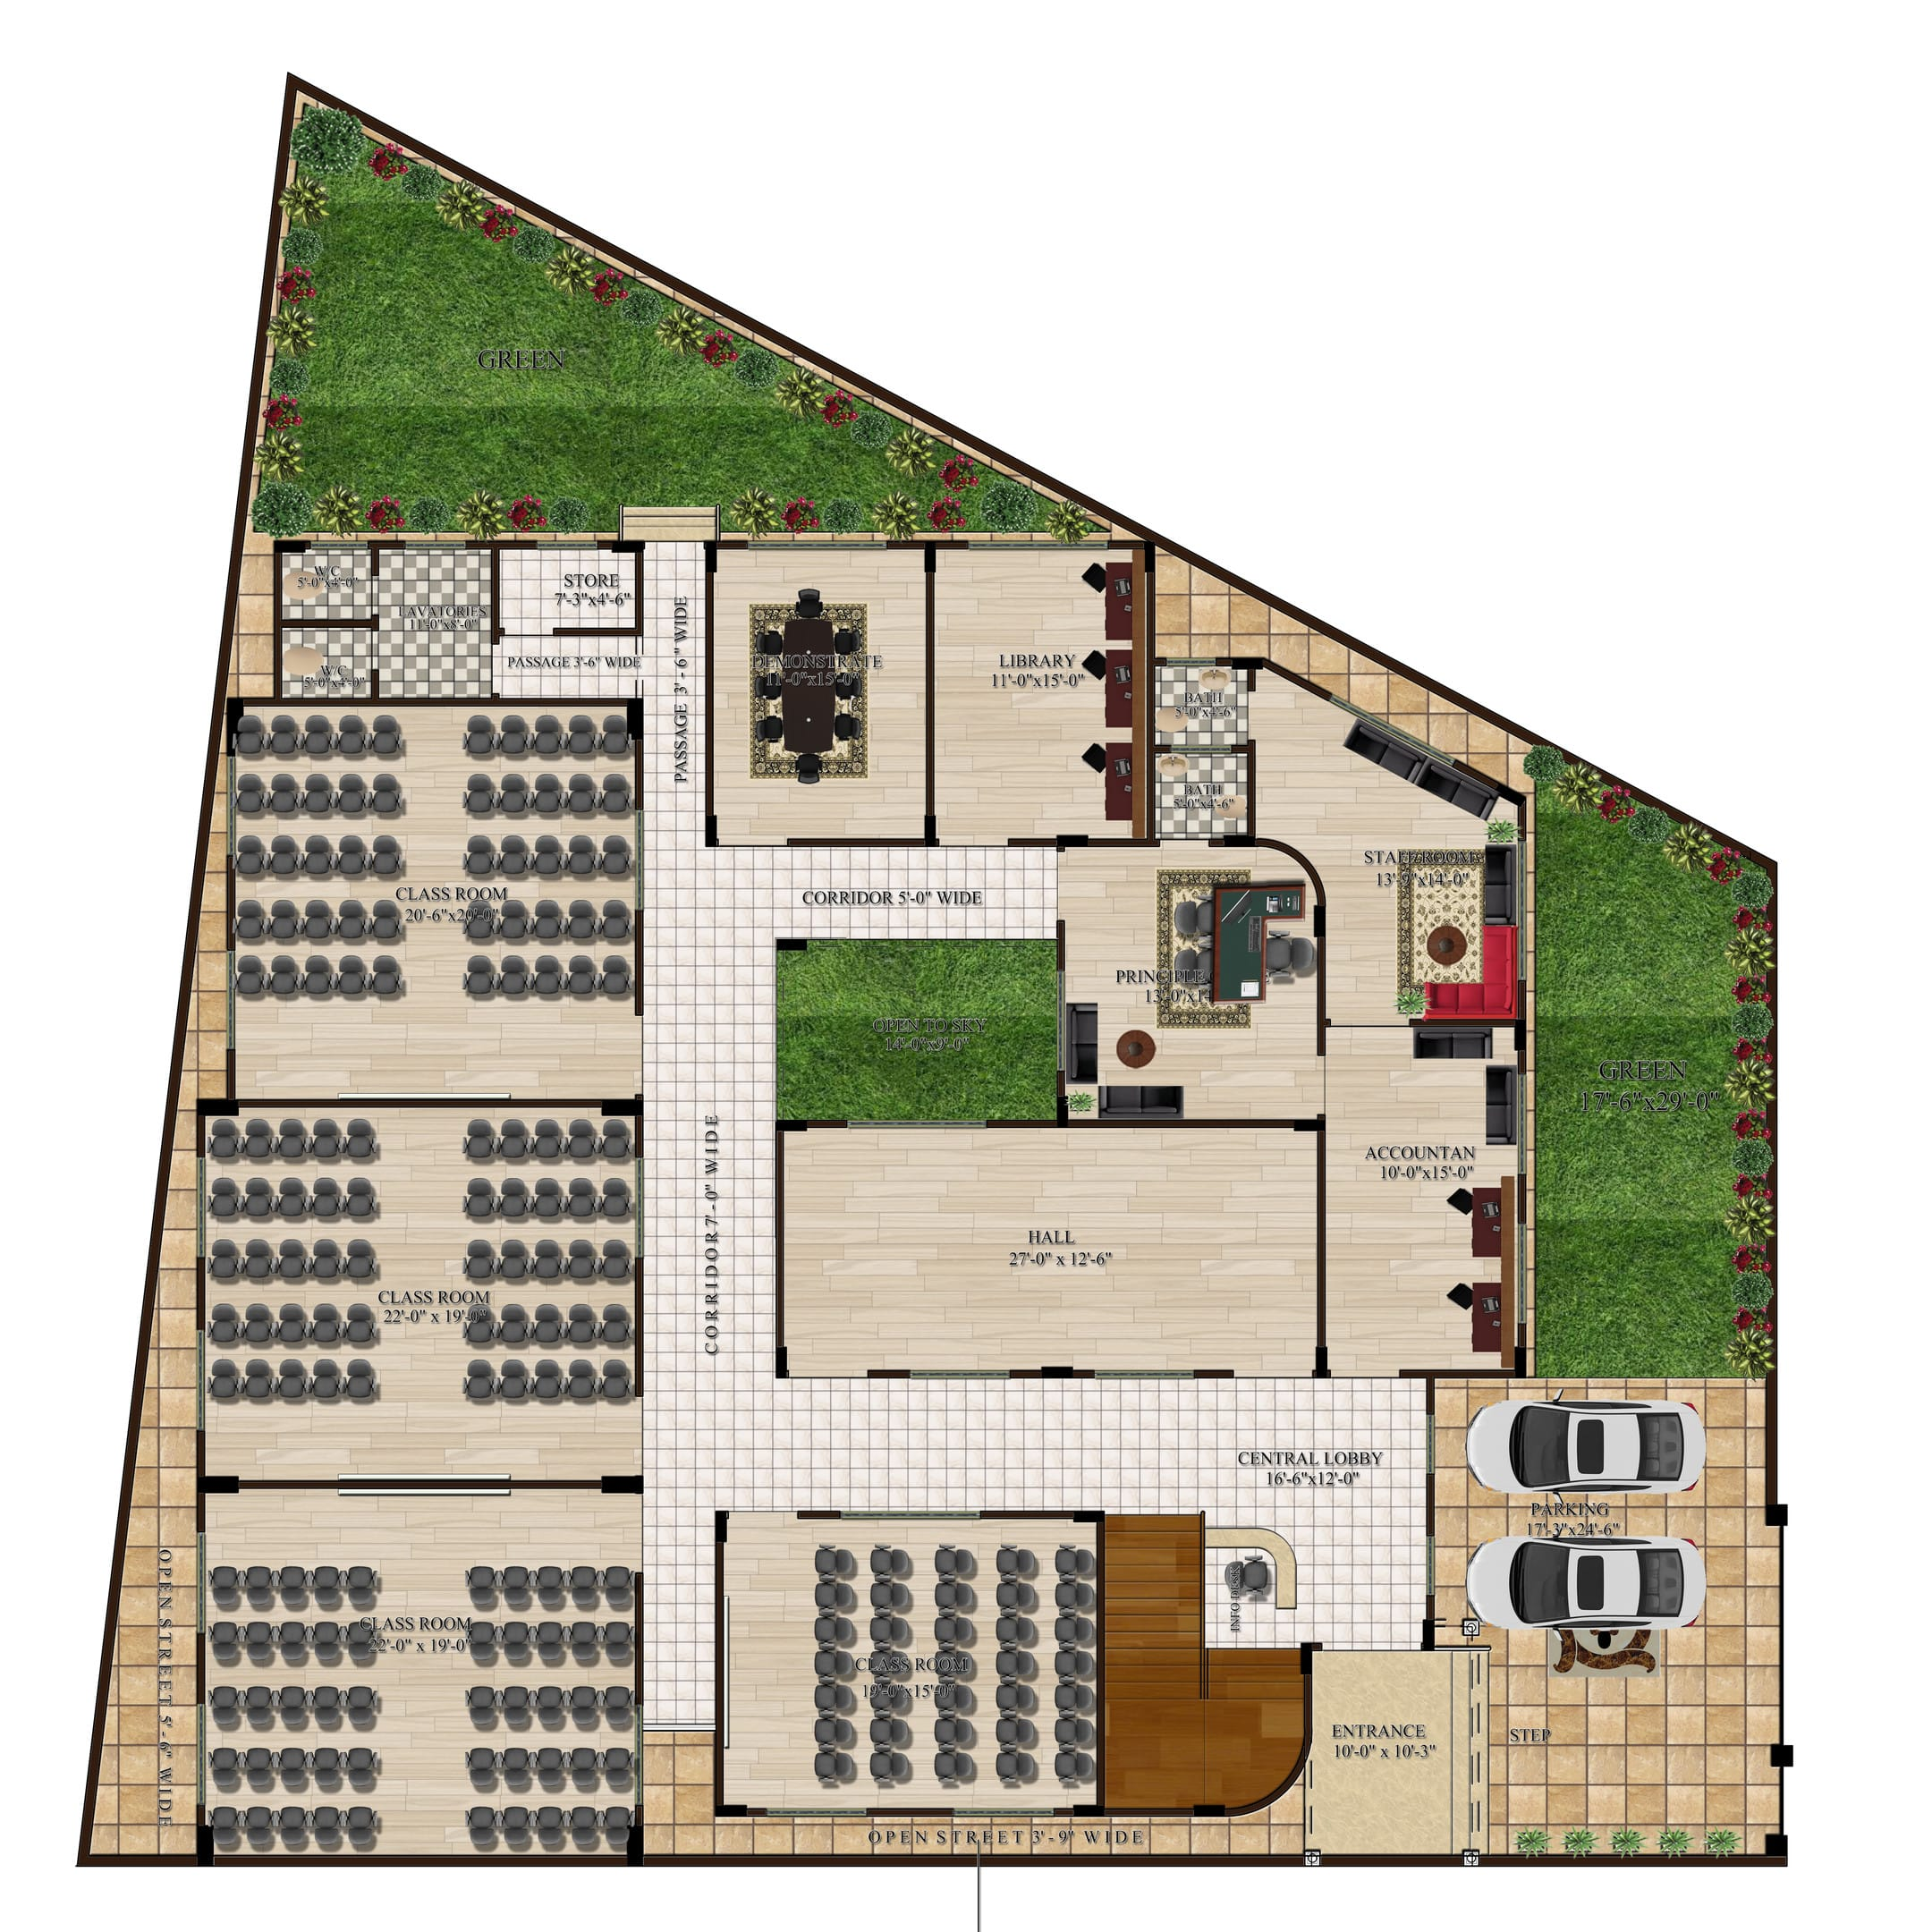 Design An Expert Floor Plan With Autocad And Photoshop By Zoyagul40 Fiverr